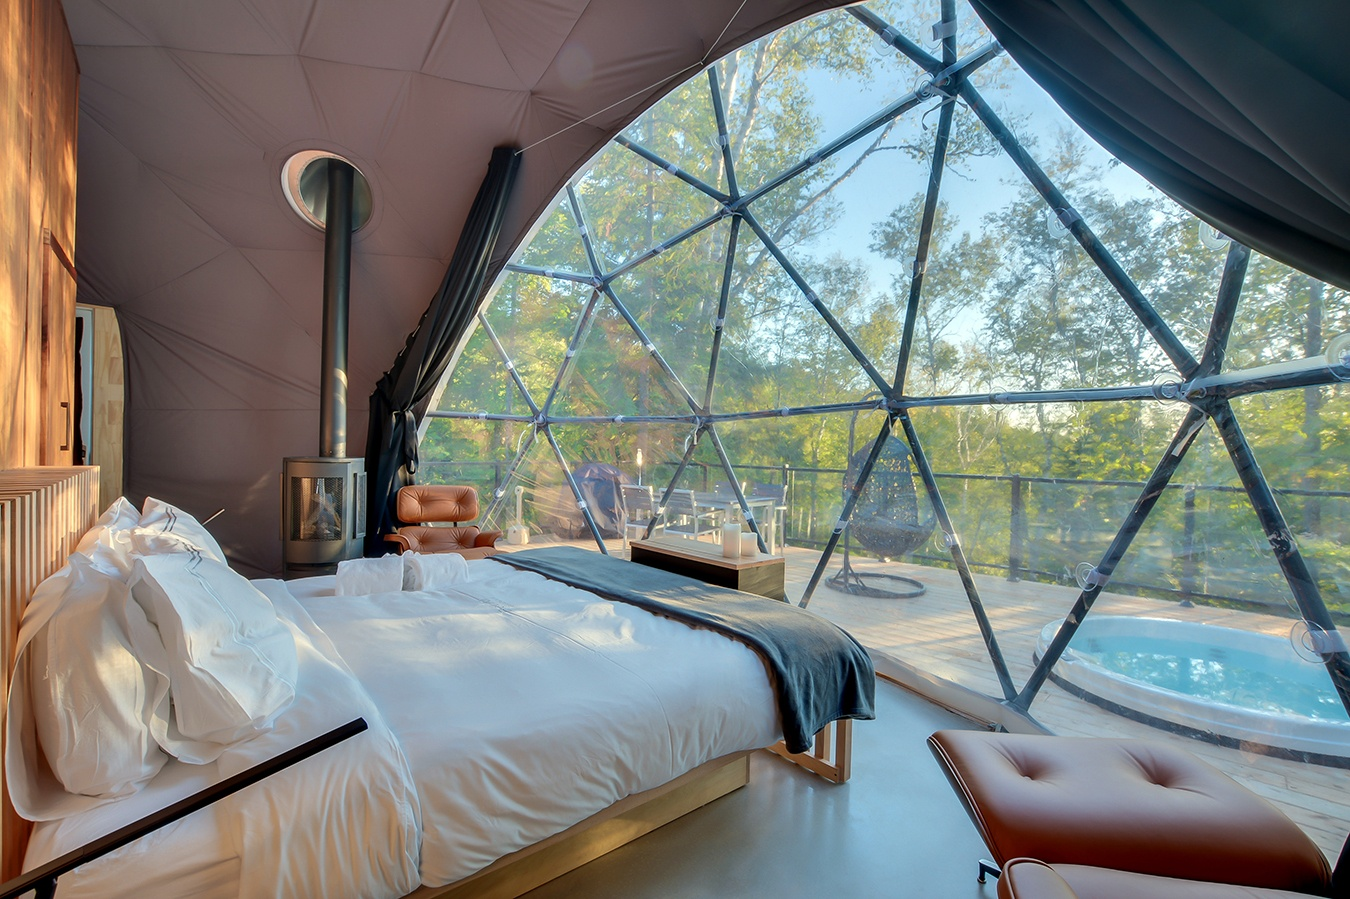 Bel Air dome hotel, hotel Mont Tremblant, dome hotel Tremblant